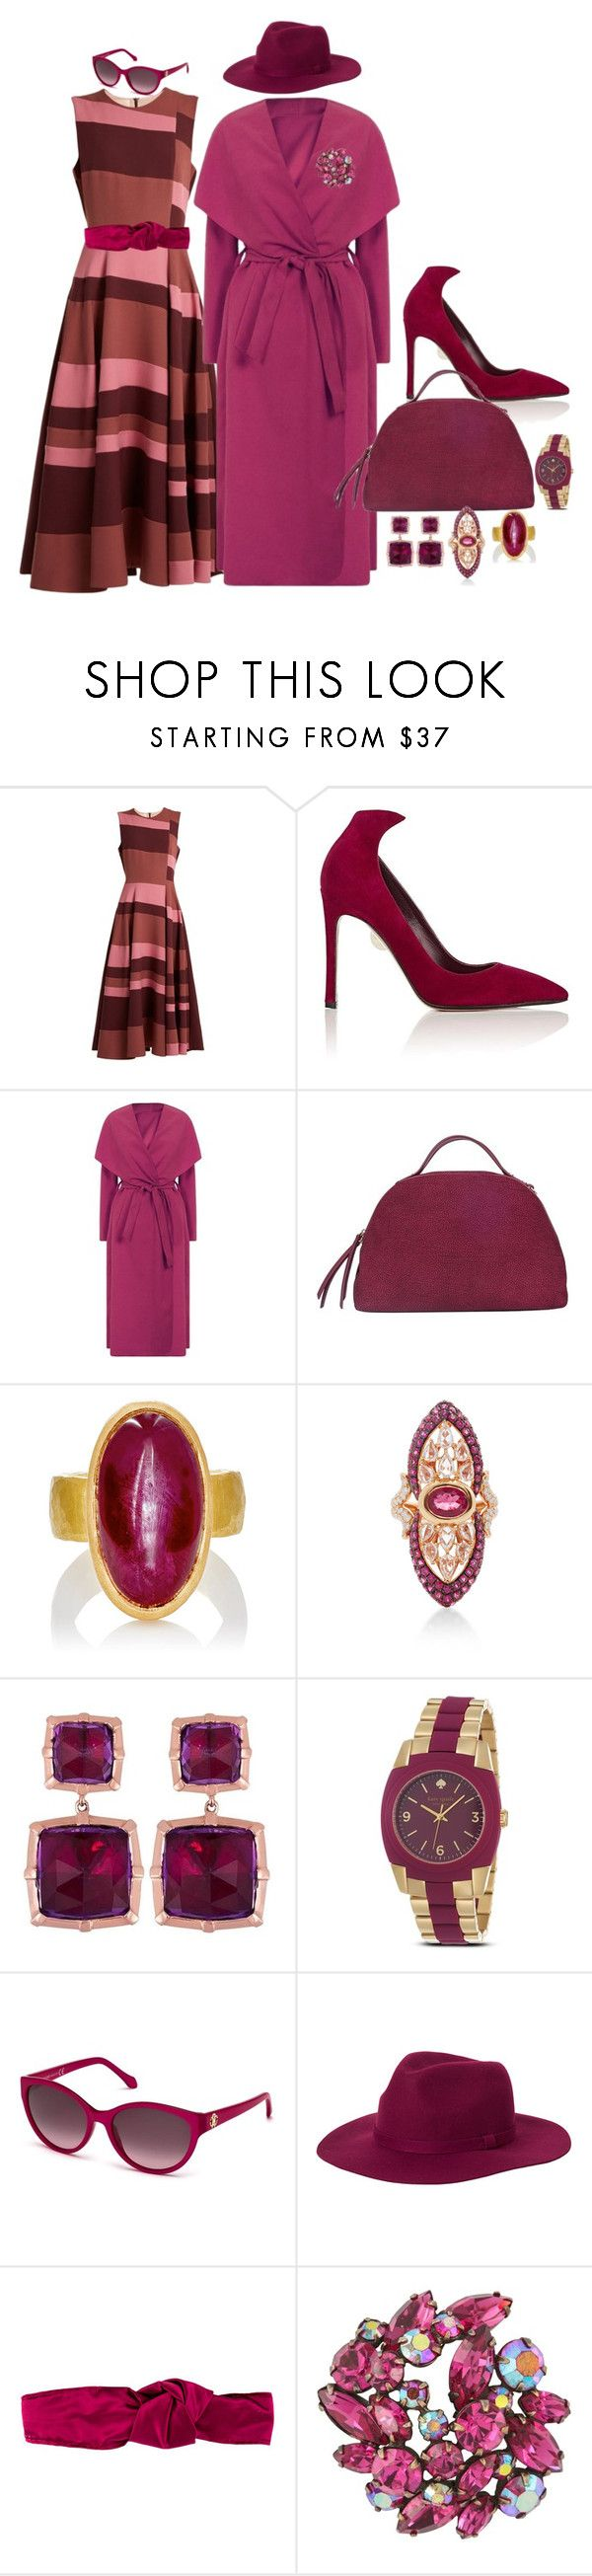 """Just somethin pretty to look at"" by blujay1126 ❤ liked on Polyvore featuring Roksanda, Samuele Failli, Borbonese, Malcolm Betts, Wendy Yue, Kate Spade, Roberto Cavalli, Monki, Prada and Susan Caplan Vintage"